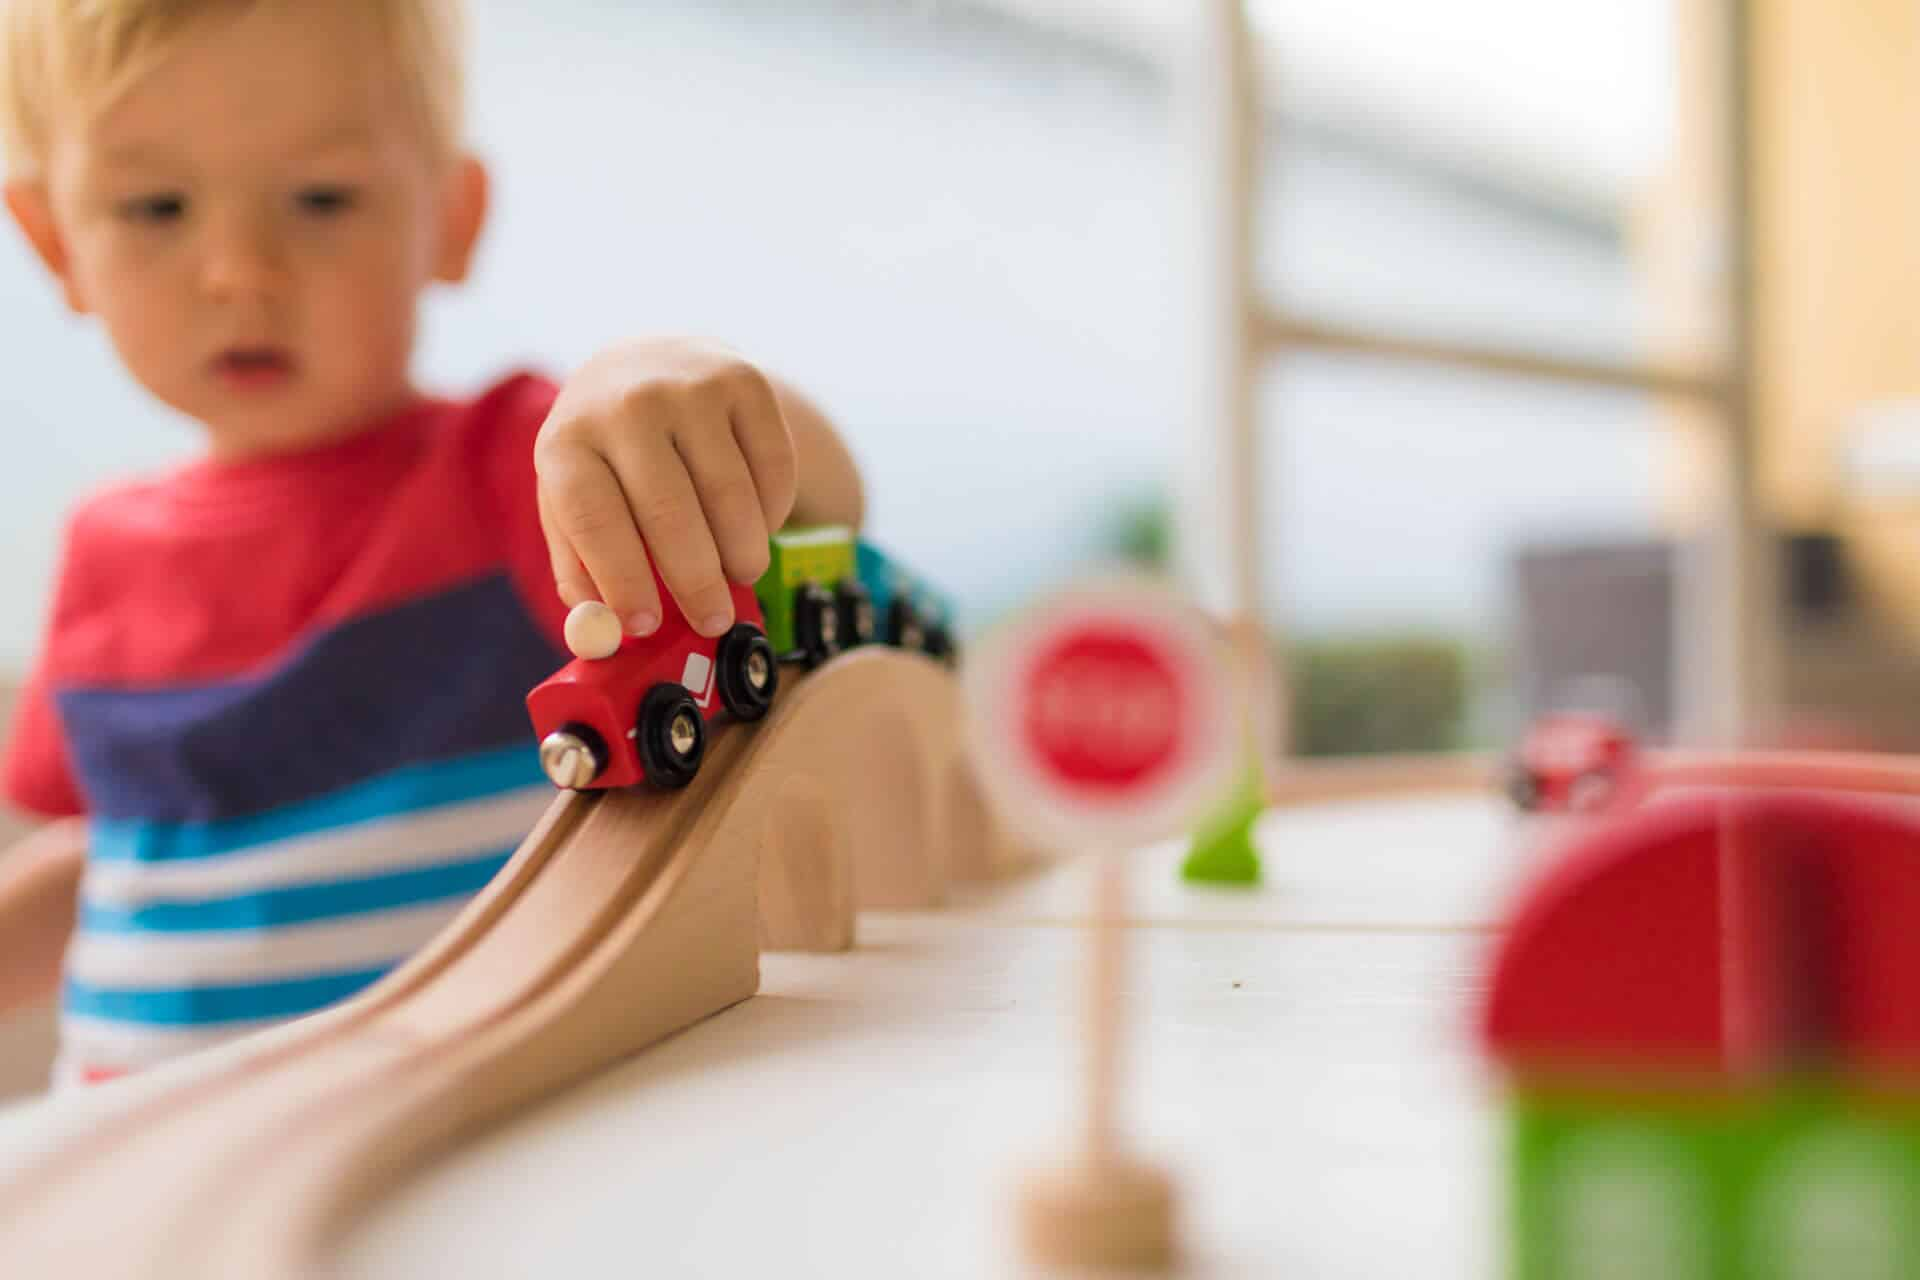 preschooler playing with train